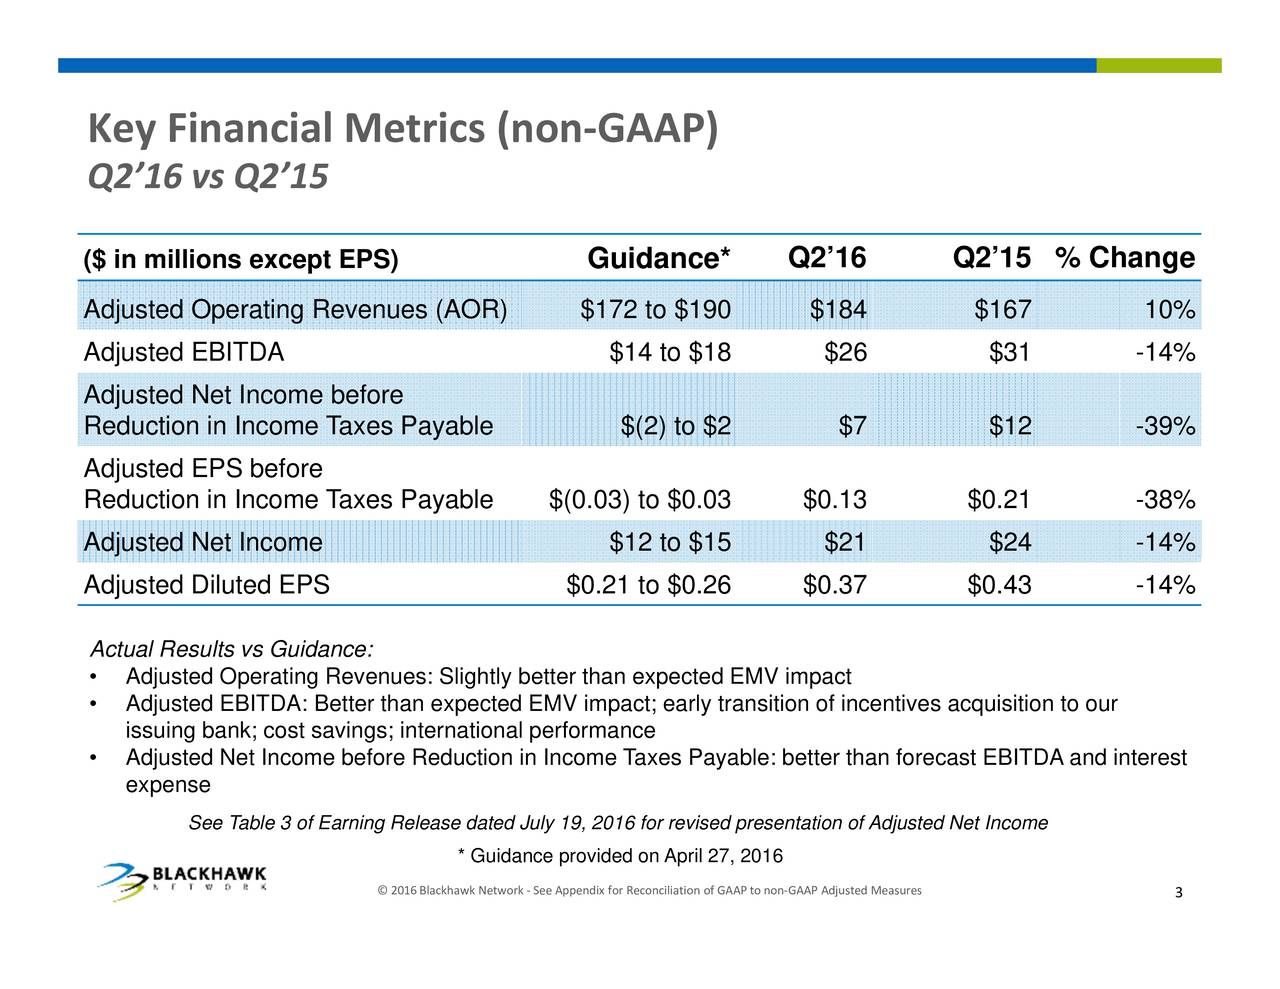 easures djusted Q216 Q215 % Change AAP on GAAP f early transition of incentives acquisition to our Taxes Payable: better than forecast EBITDA and interest GAAP) or Guidance* ppendix e (non ly better than expected EMV impact etwork * Guidance provided on April 27, 2016 lackhawk 2016 Metrics 215 vs Financial See Table 3 of Earning Release dated July 19, 2016 issuigxpens;ecost savings; international performance AcuRdAdjusted EBITDA: Better than expected EMV impact;me Ke y 216($ inmdjAitustjxeEBttieAiccostjnbnAaeni)tmayabSe72atoe4190$$(0.t3)t$$$2.1